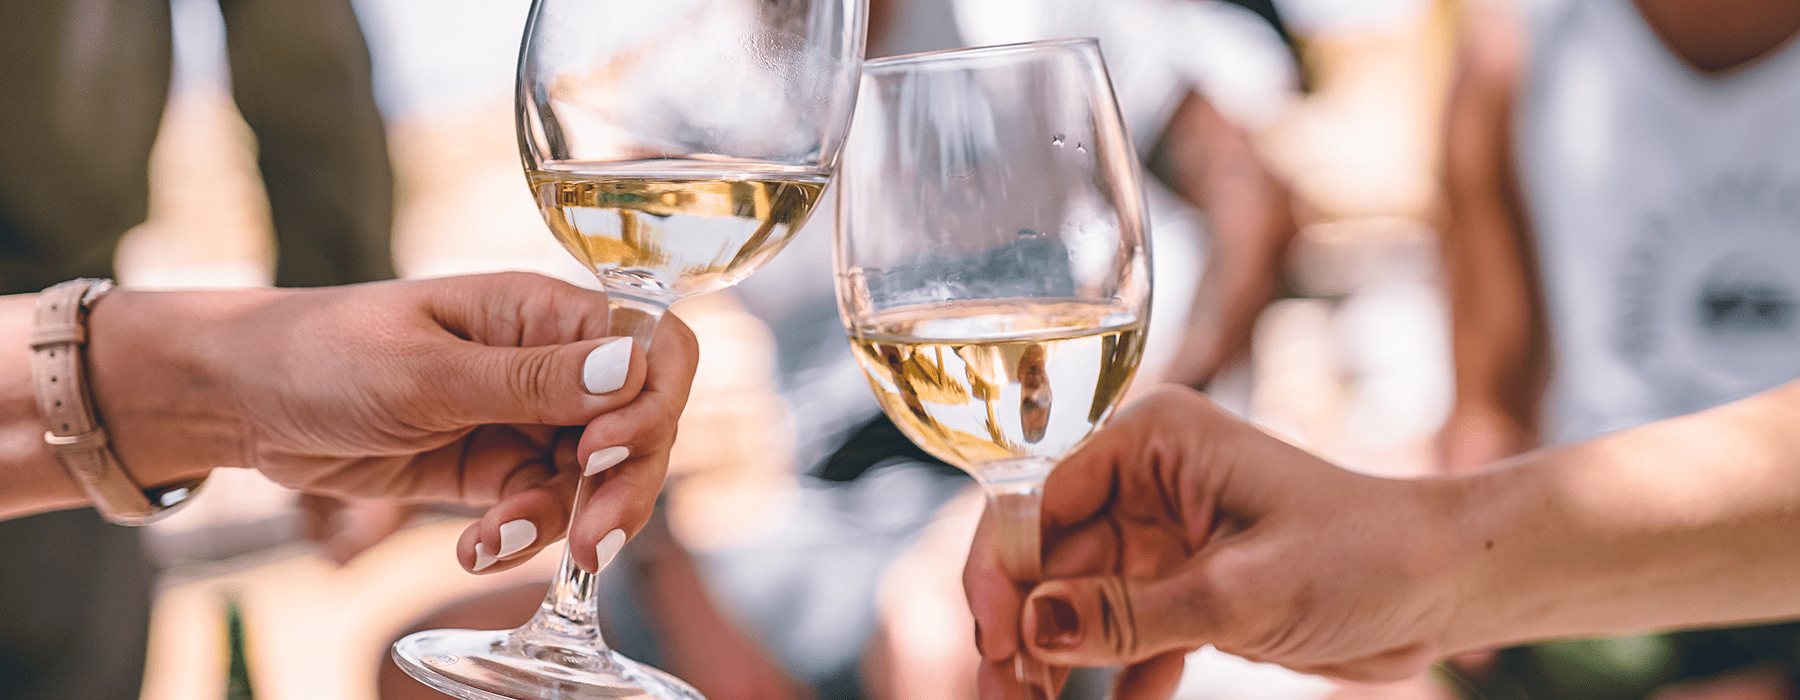 lifestyle image of a group toasting by pushing their wine glasses together